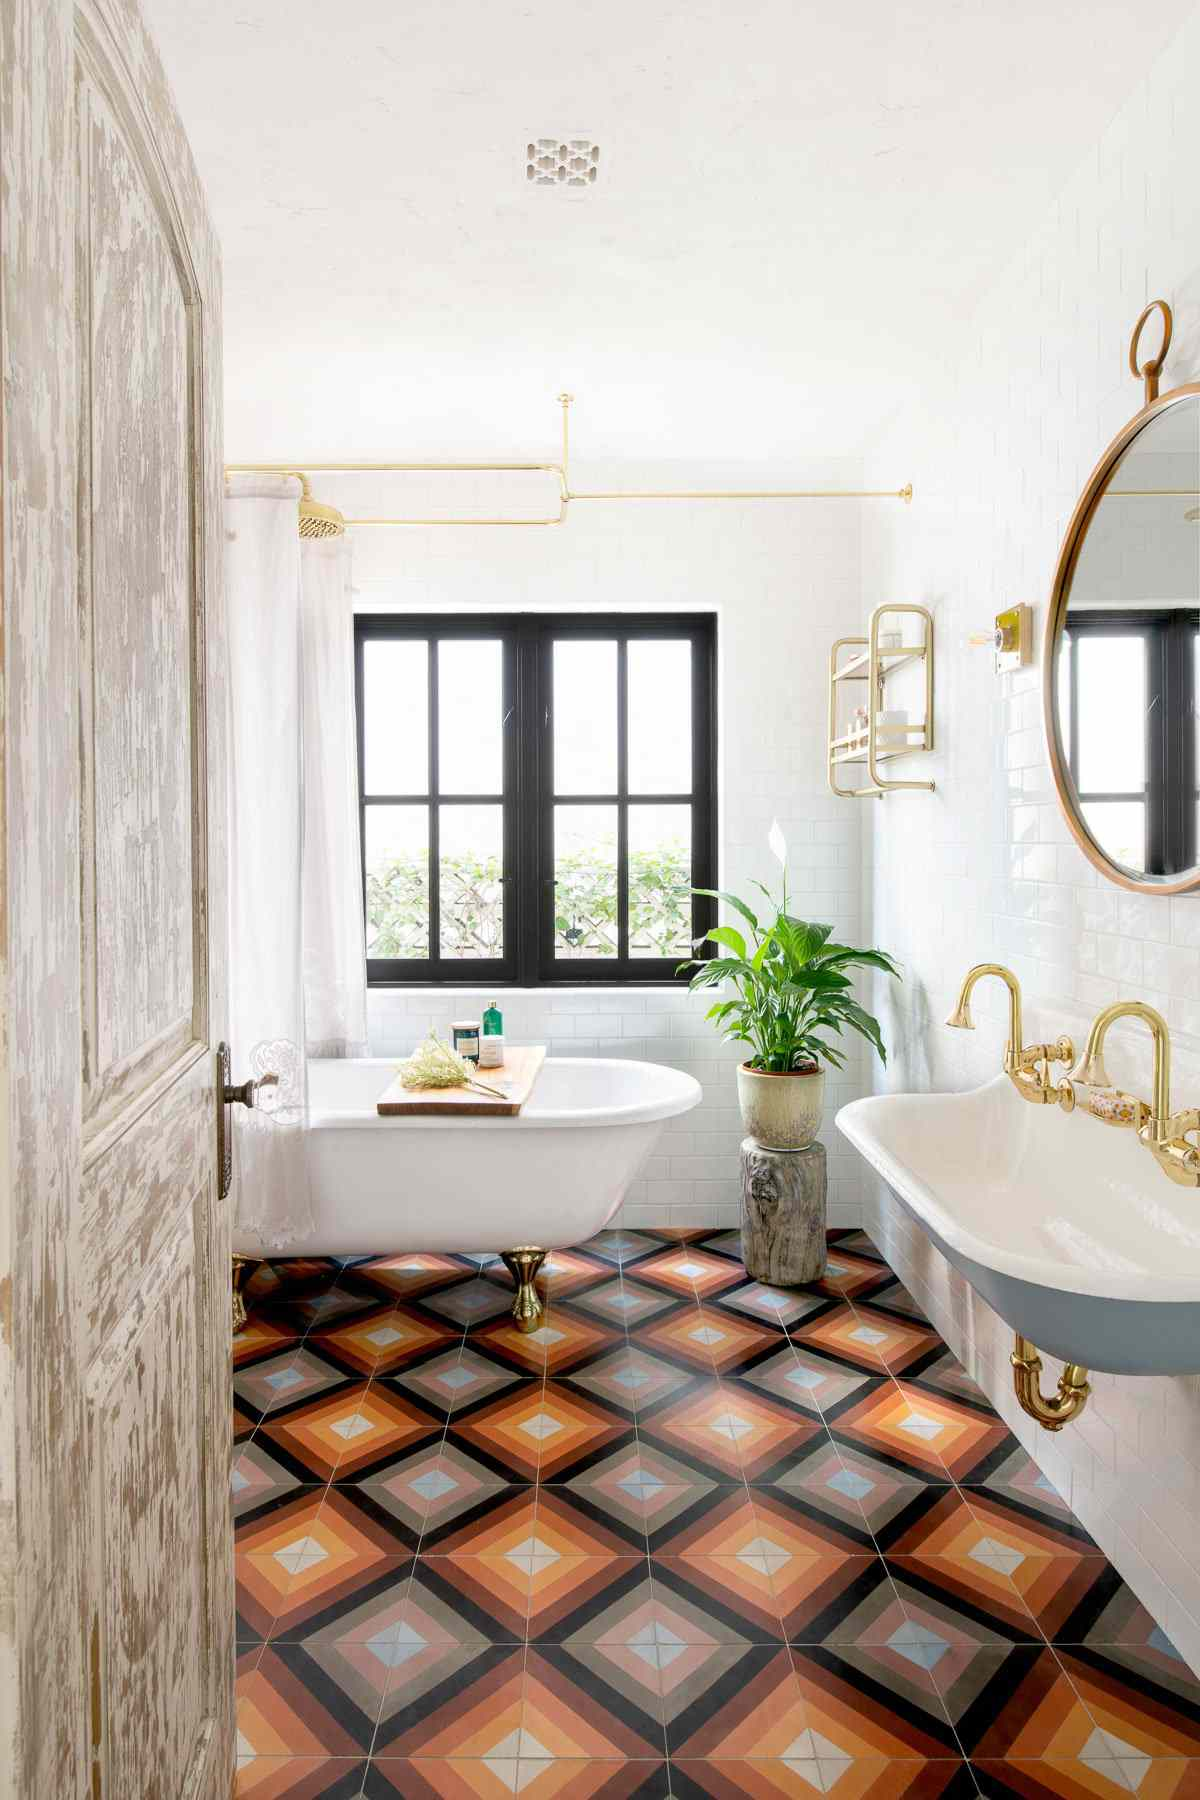 A small primary bathroom with a boldly tiled floor, a clawfoot tub, and a wall-mount sink